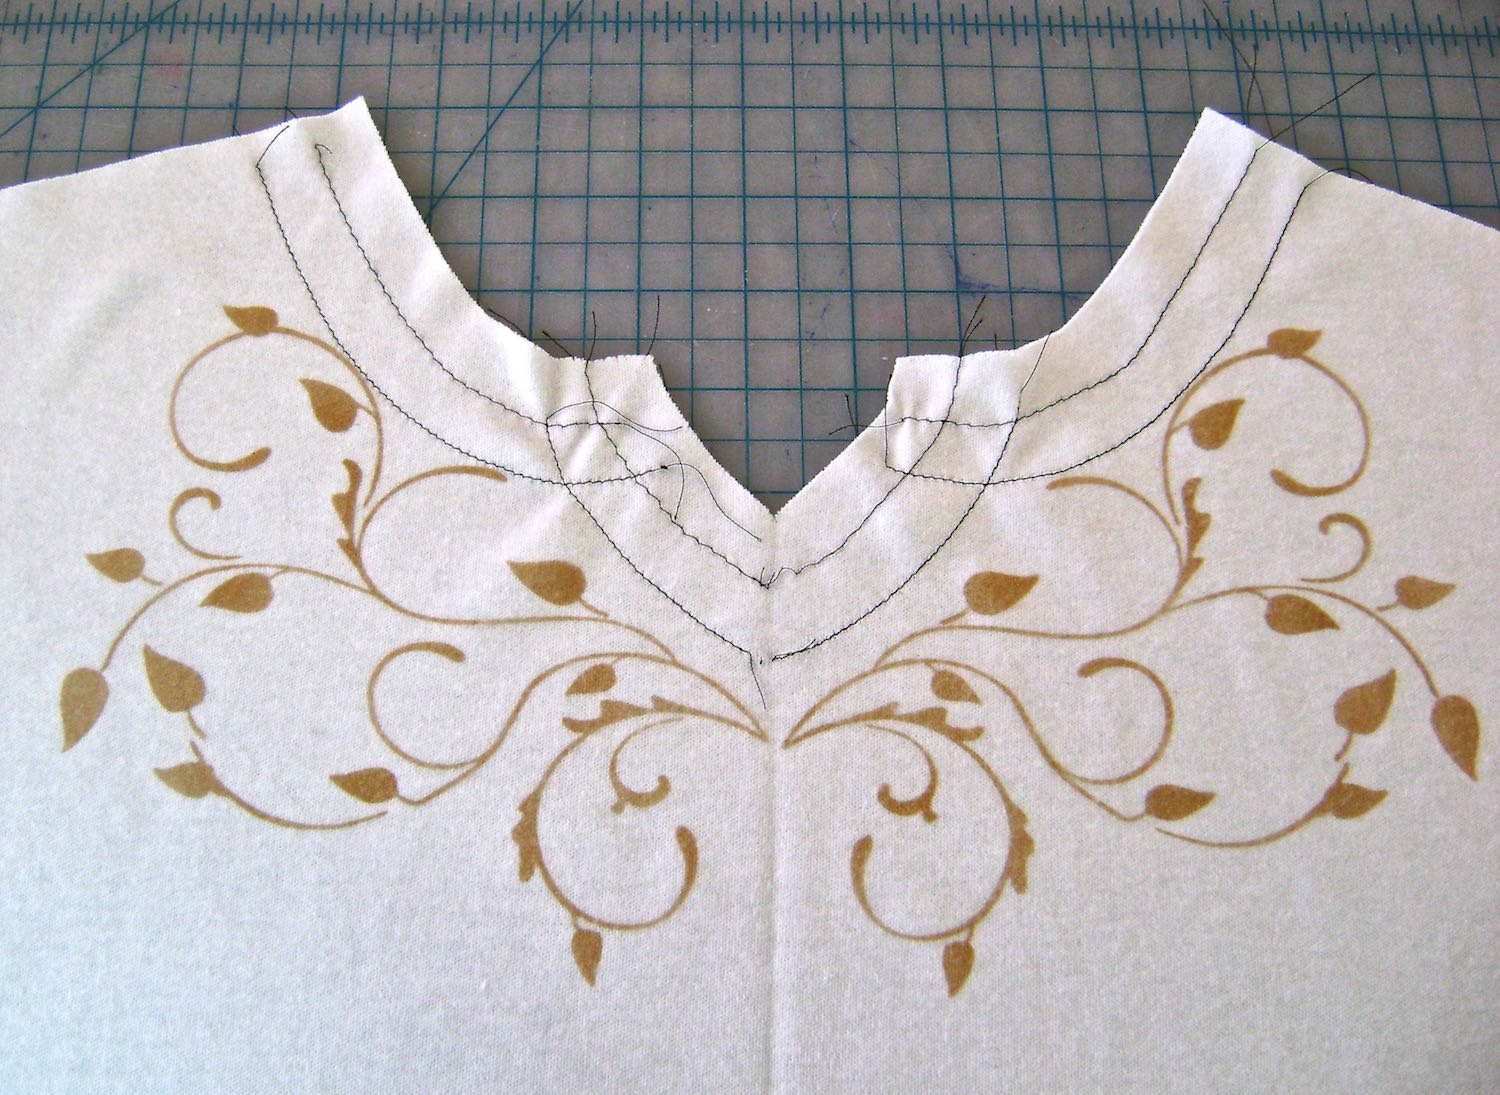 step 7 - Remove paint from the stencil then apply adhesive spray.  Repeat step #4 and # 5 with the stencil flipped to create a mirror image of the painted fabric.